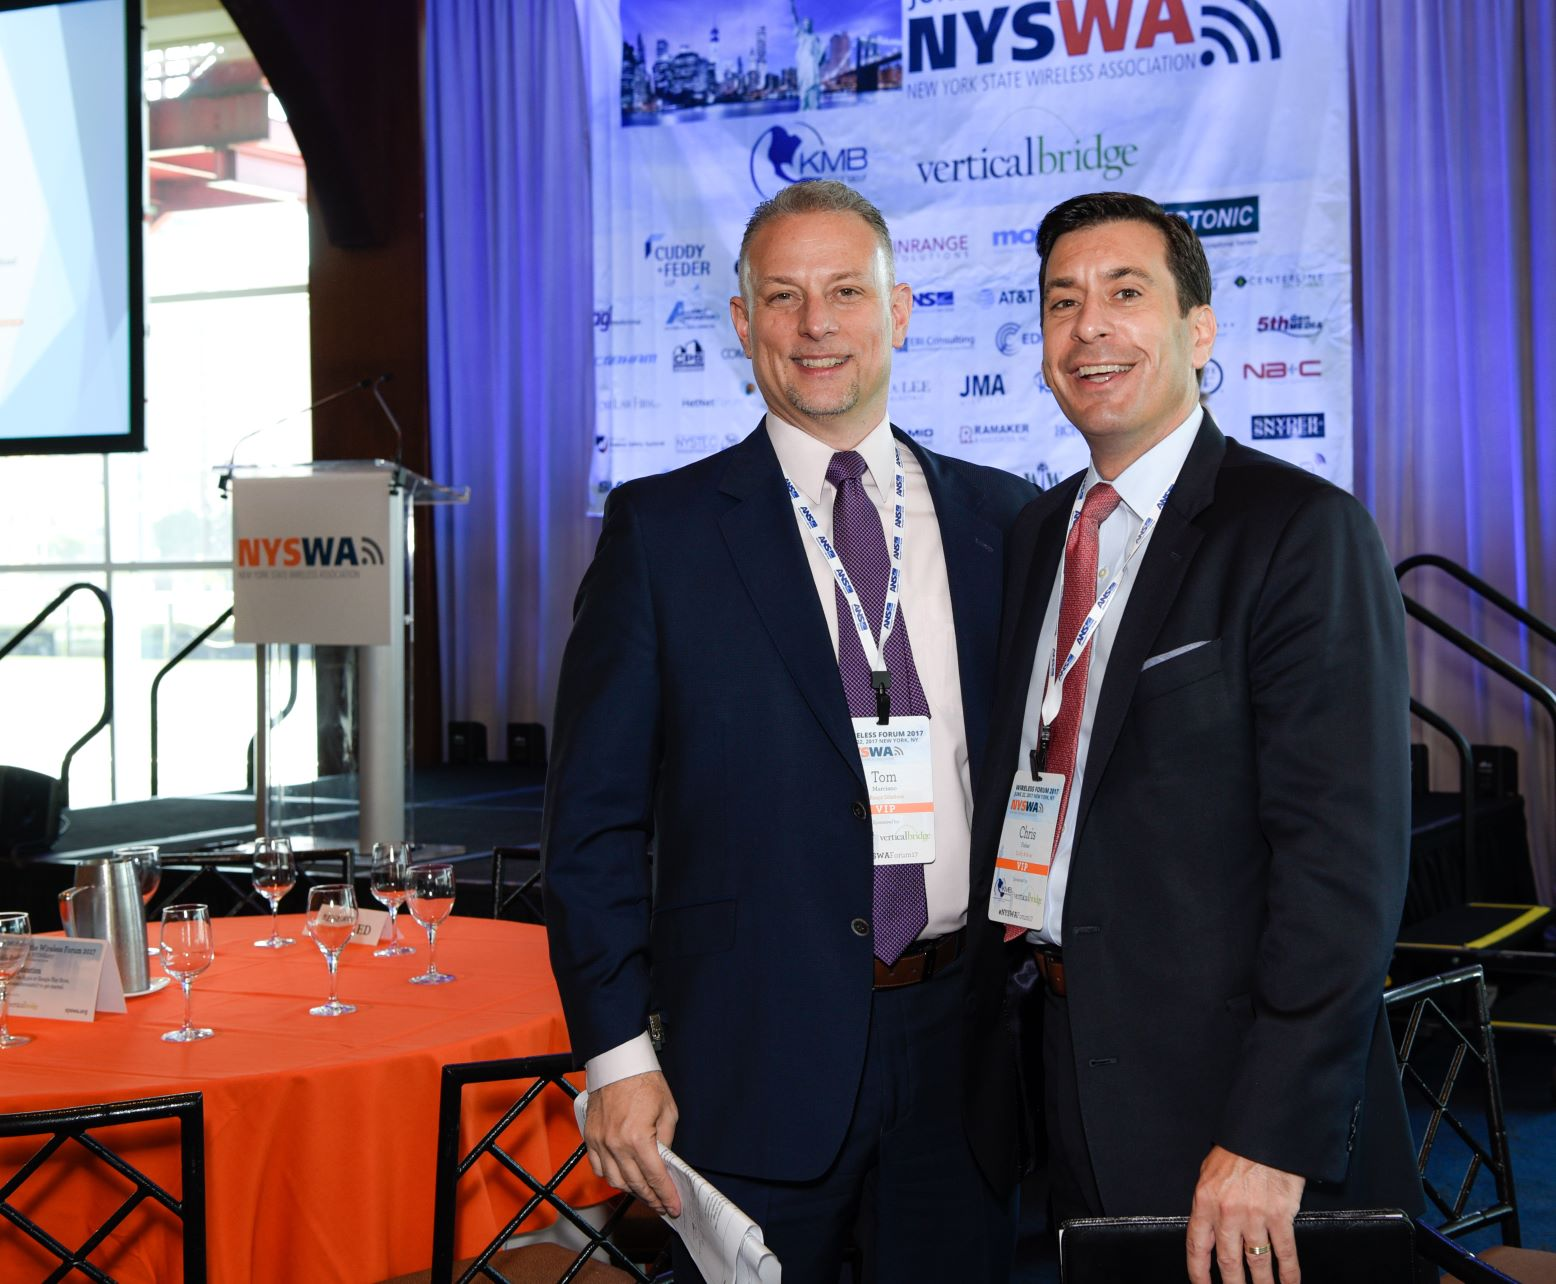 Chris Fisher and Tom Marciano at NYSWA Forum